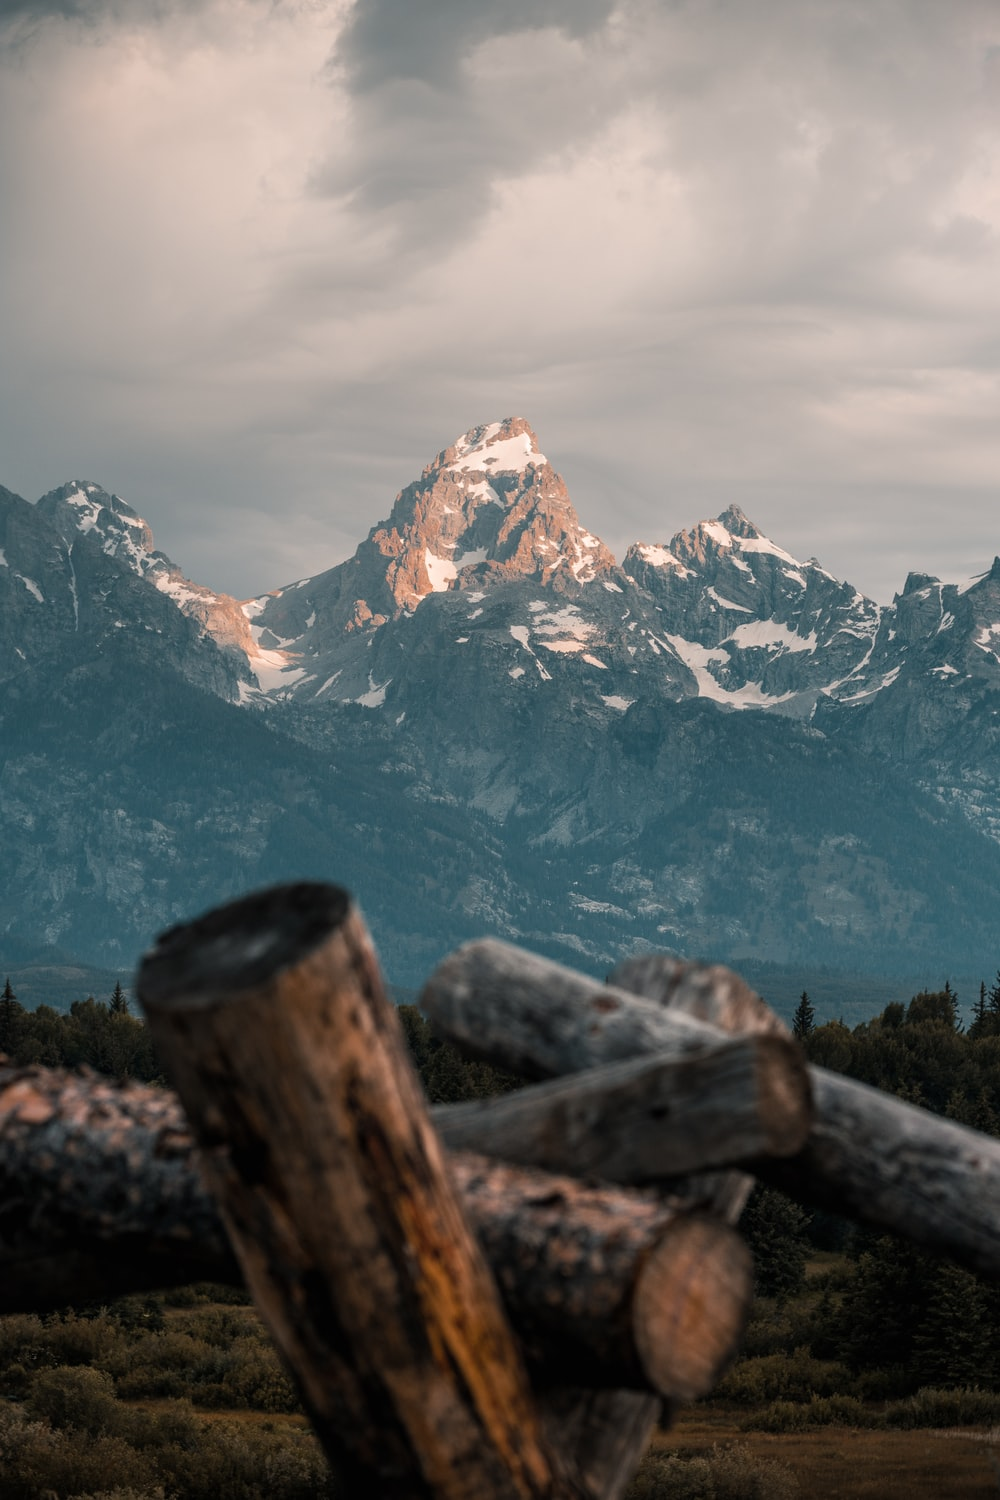 brown tree logs overlooking snow capped rocky mountain